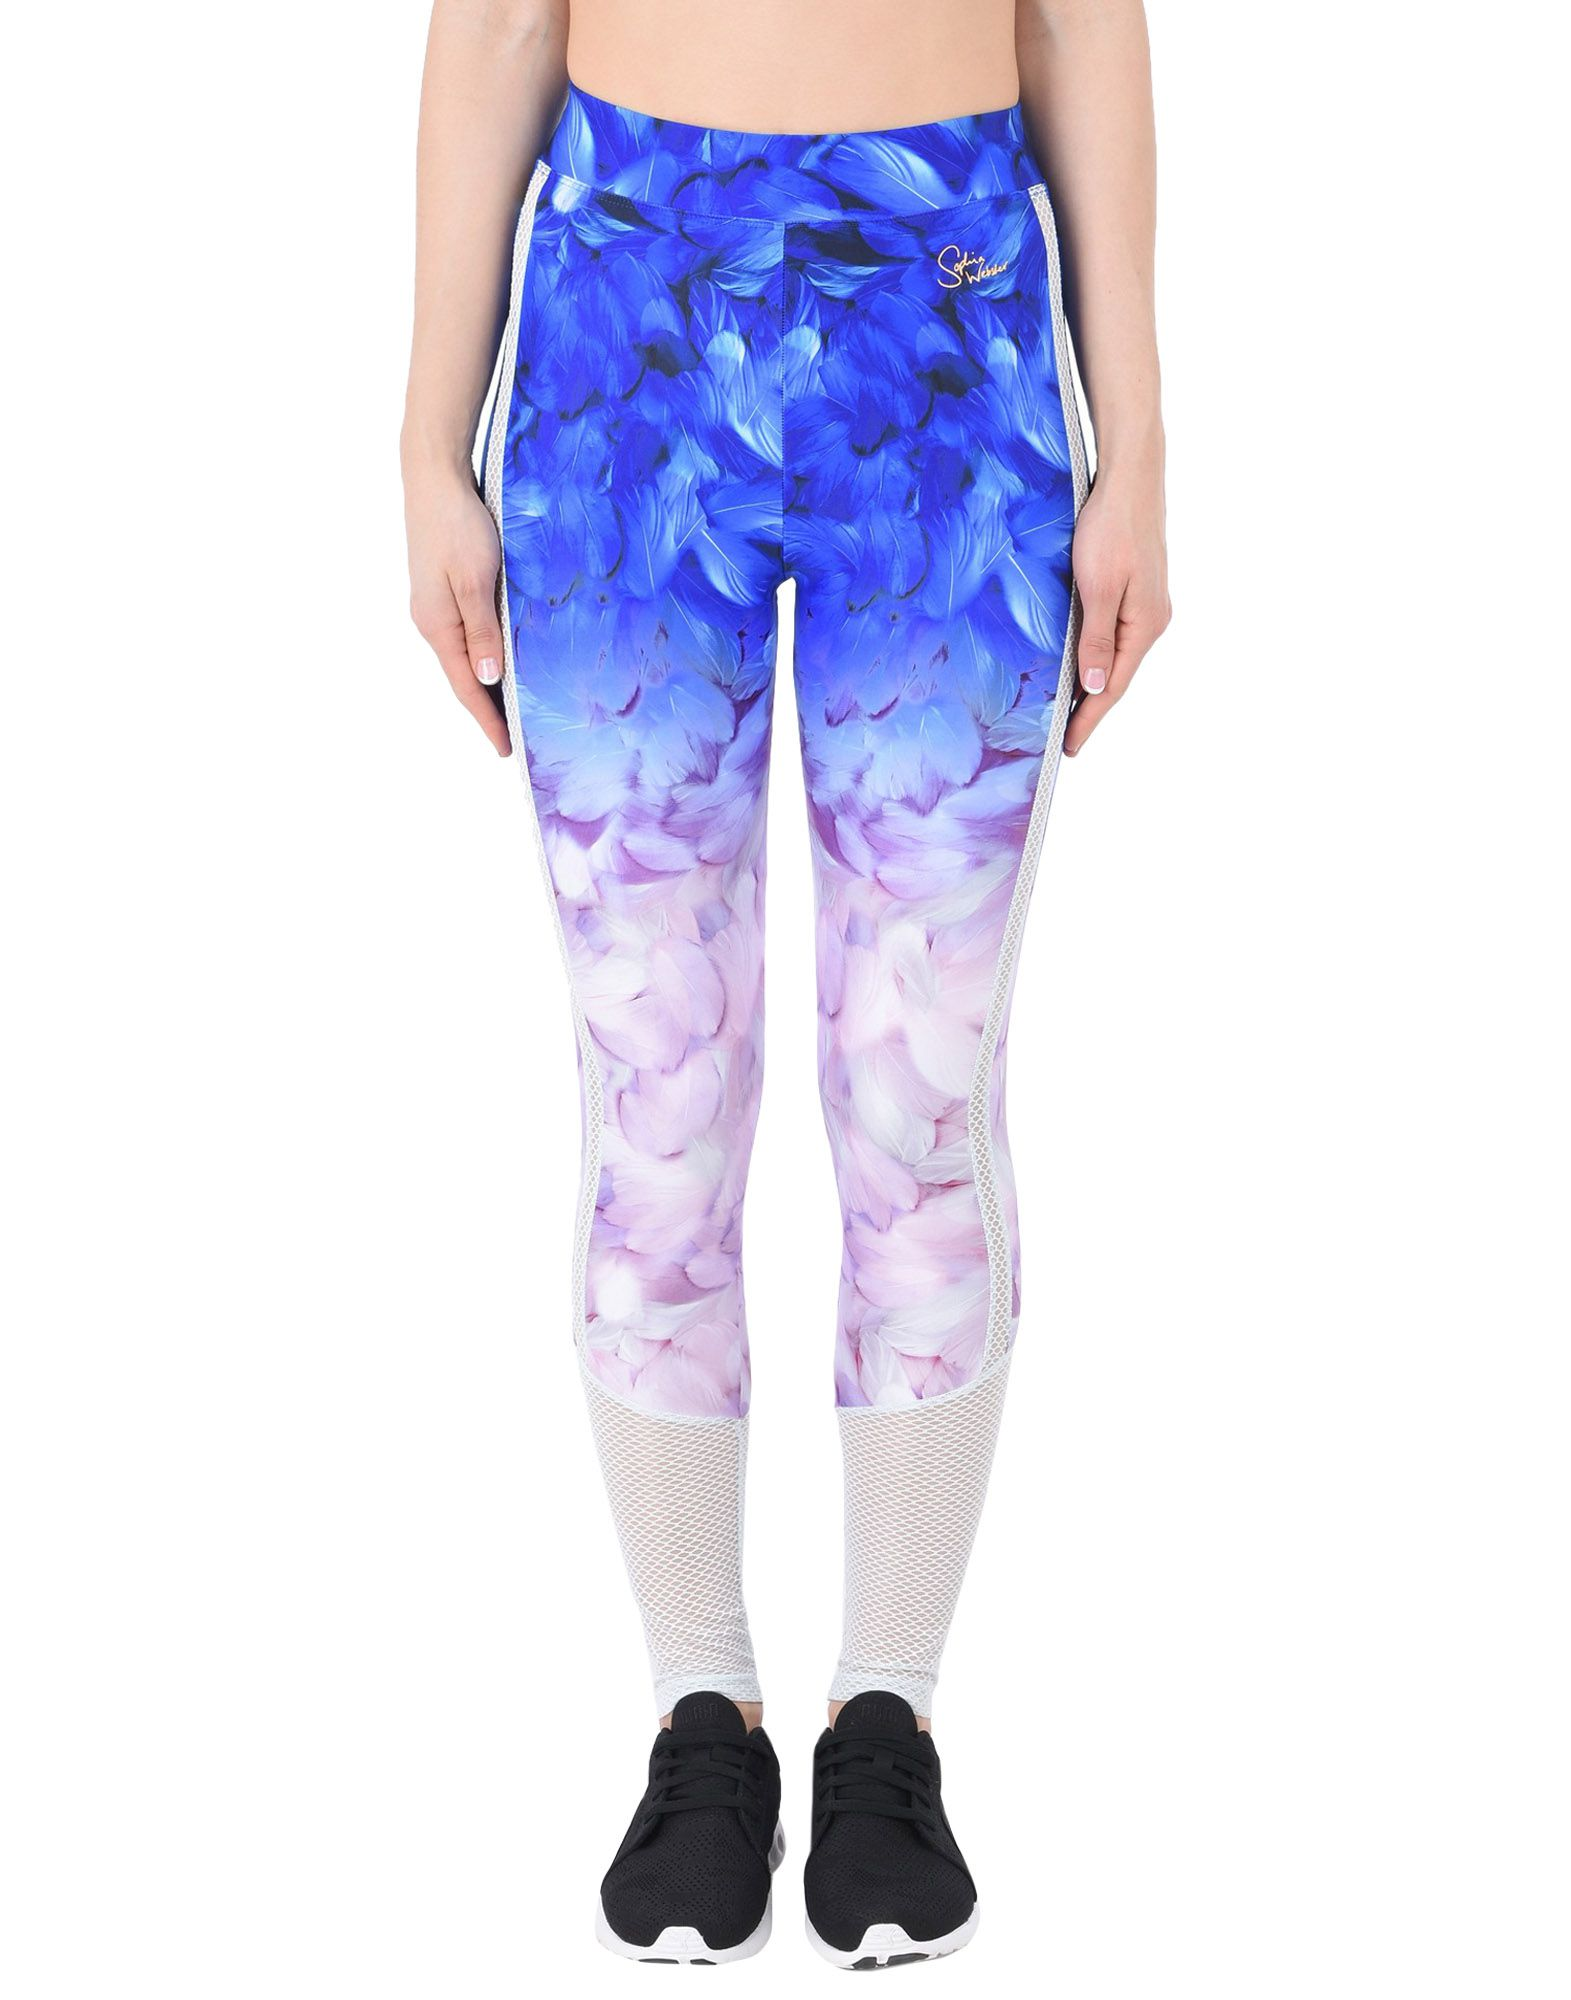 Leggings Puma X Sophia Webster Puma X Sw Tights - Donna - Acquista online su 8o3TTLZU